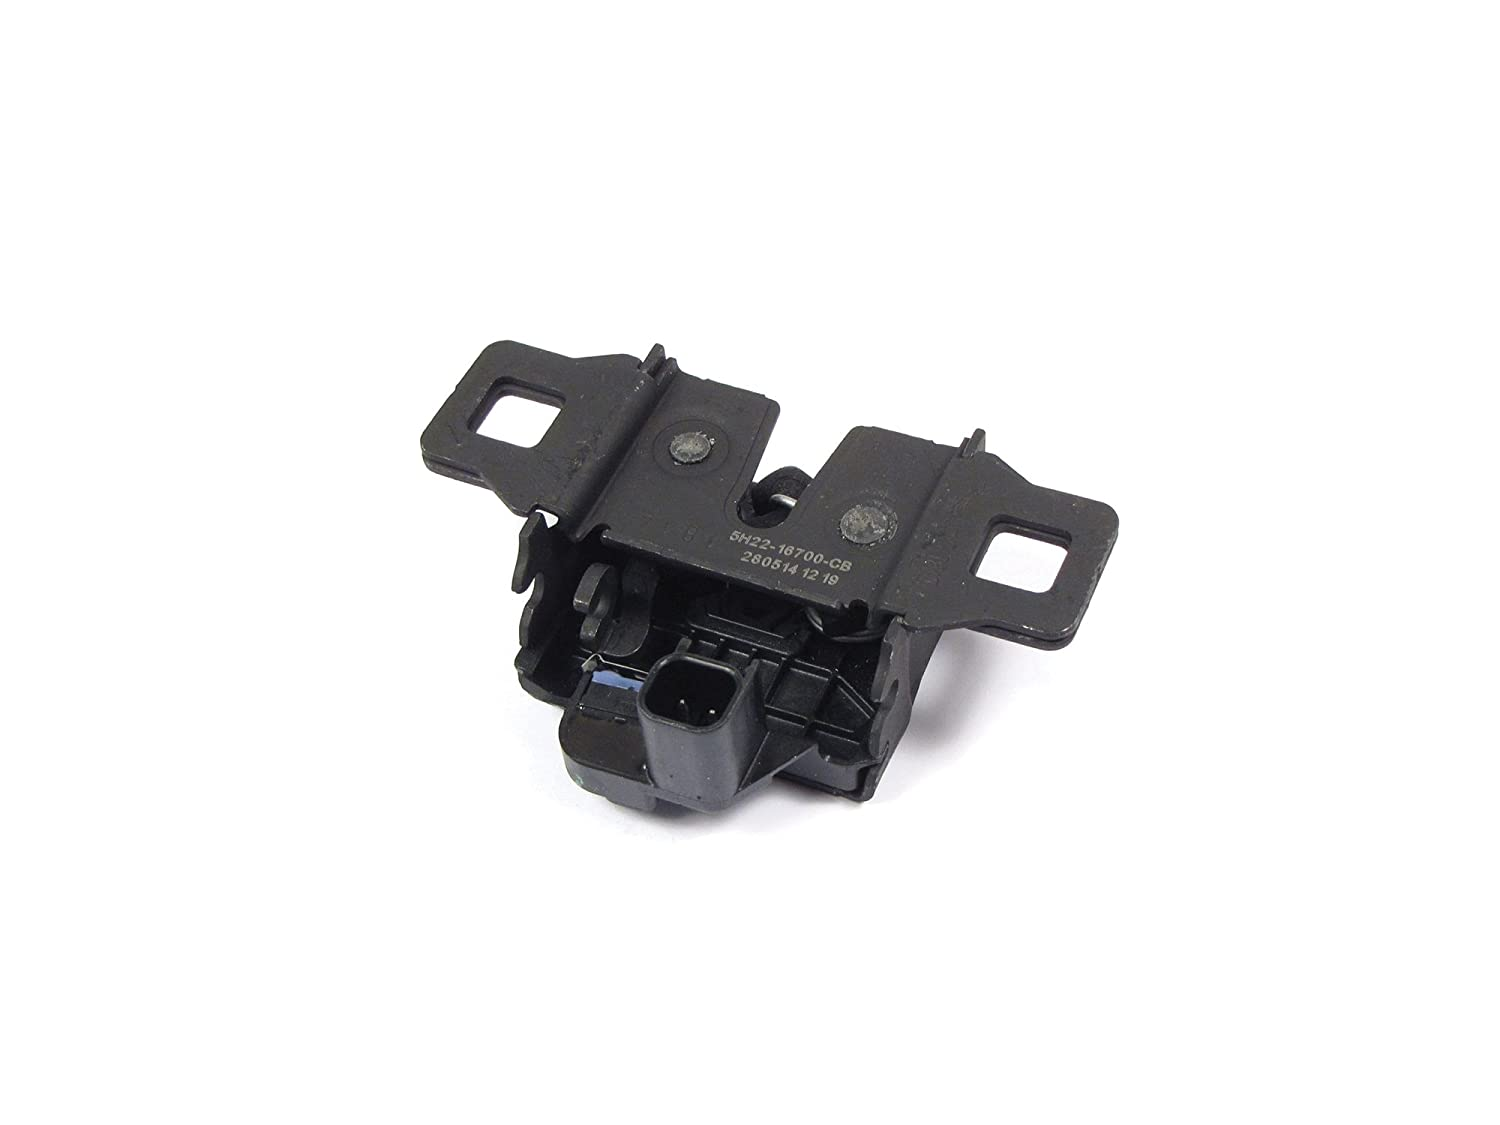 Genuine Hood Alarm Anti-Theft Switch and Latch LR041431 / LR065340 for LR2, LR3, LR4, and Range Rover Sport